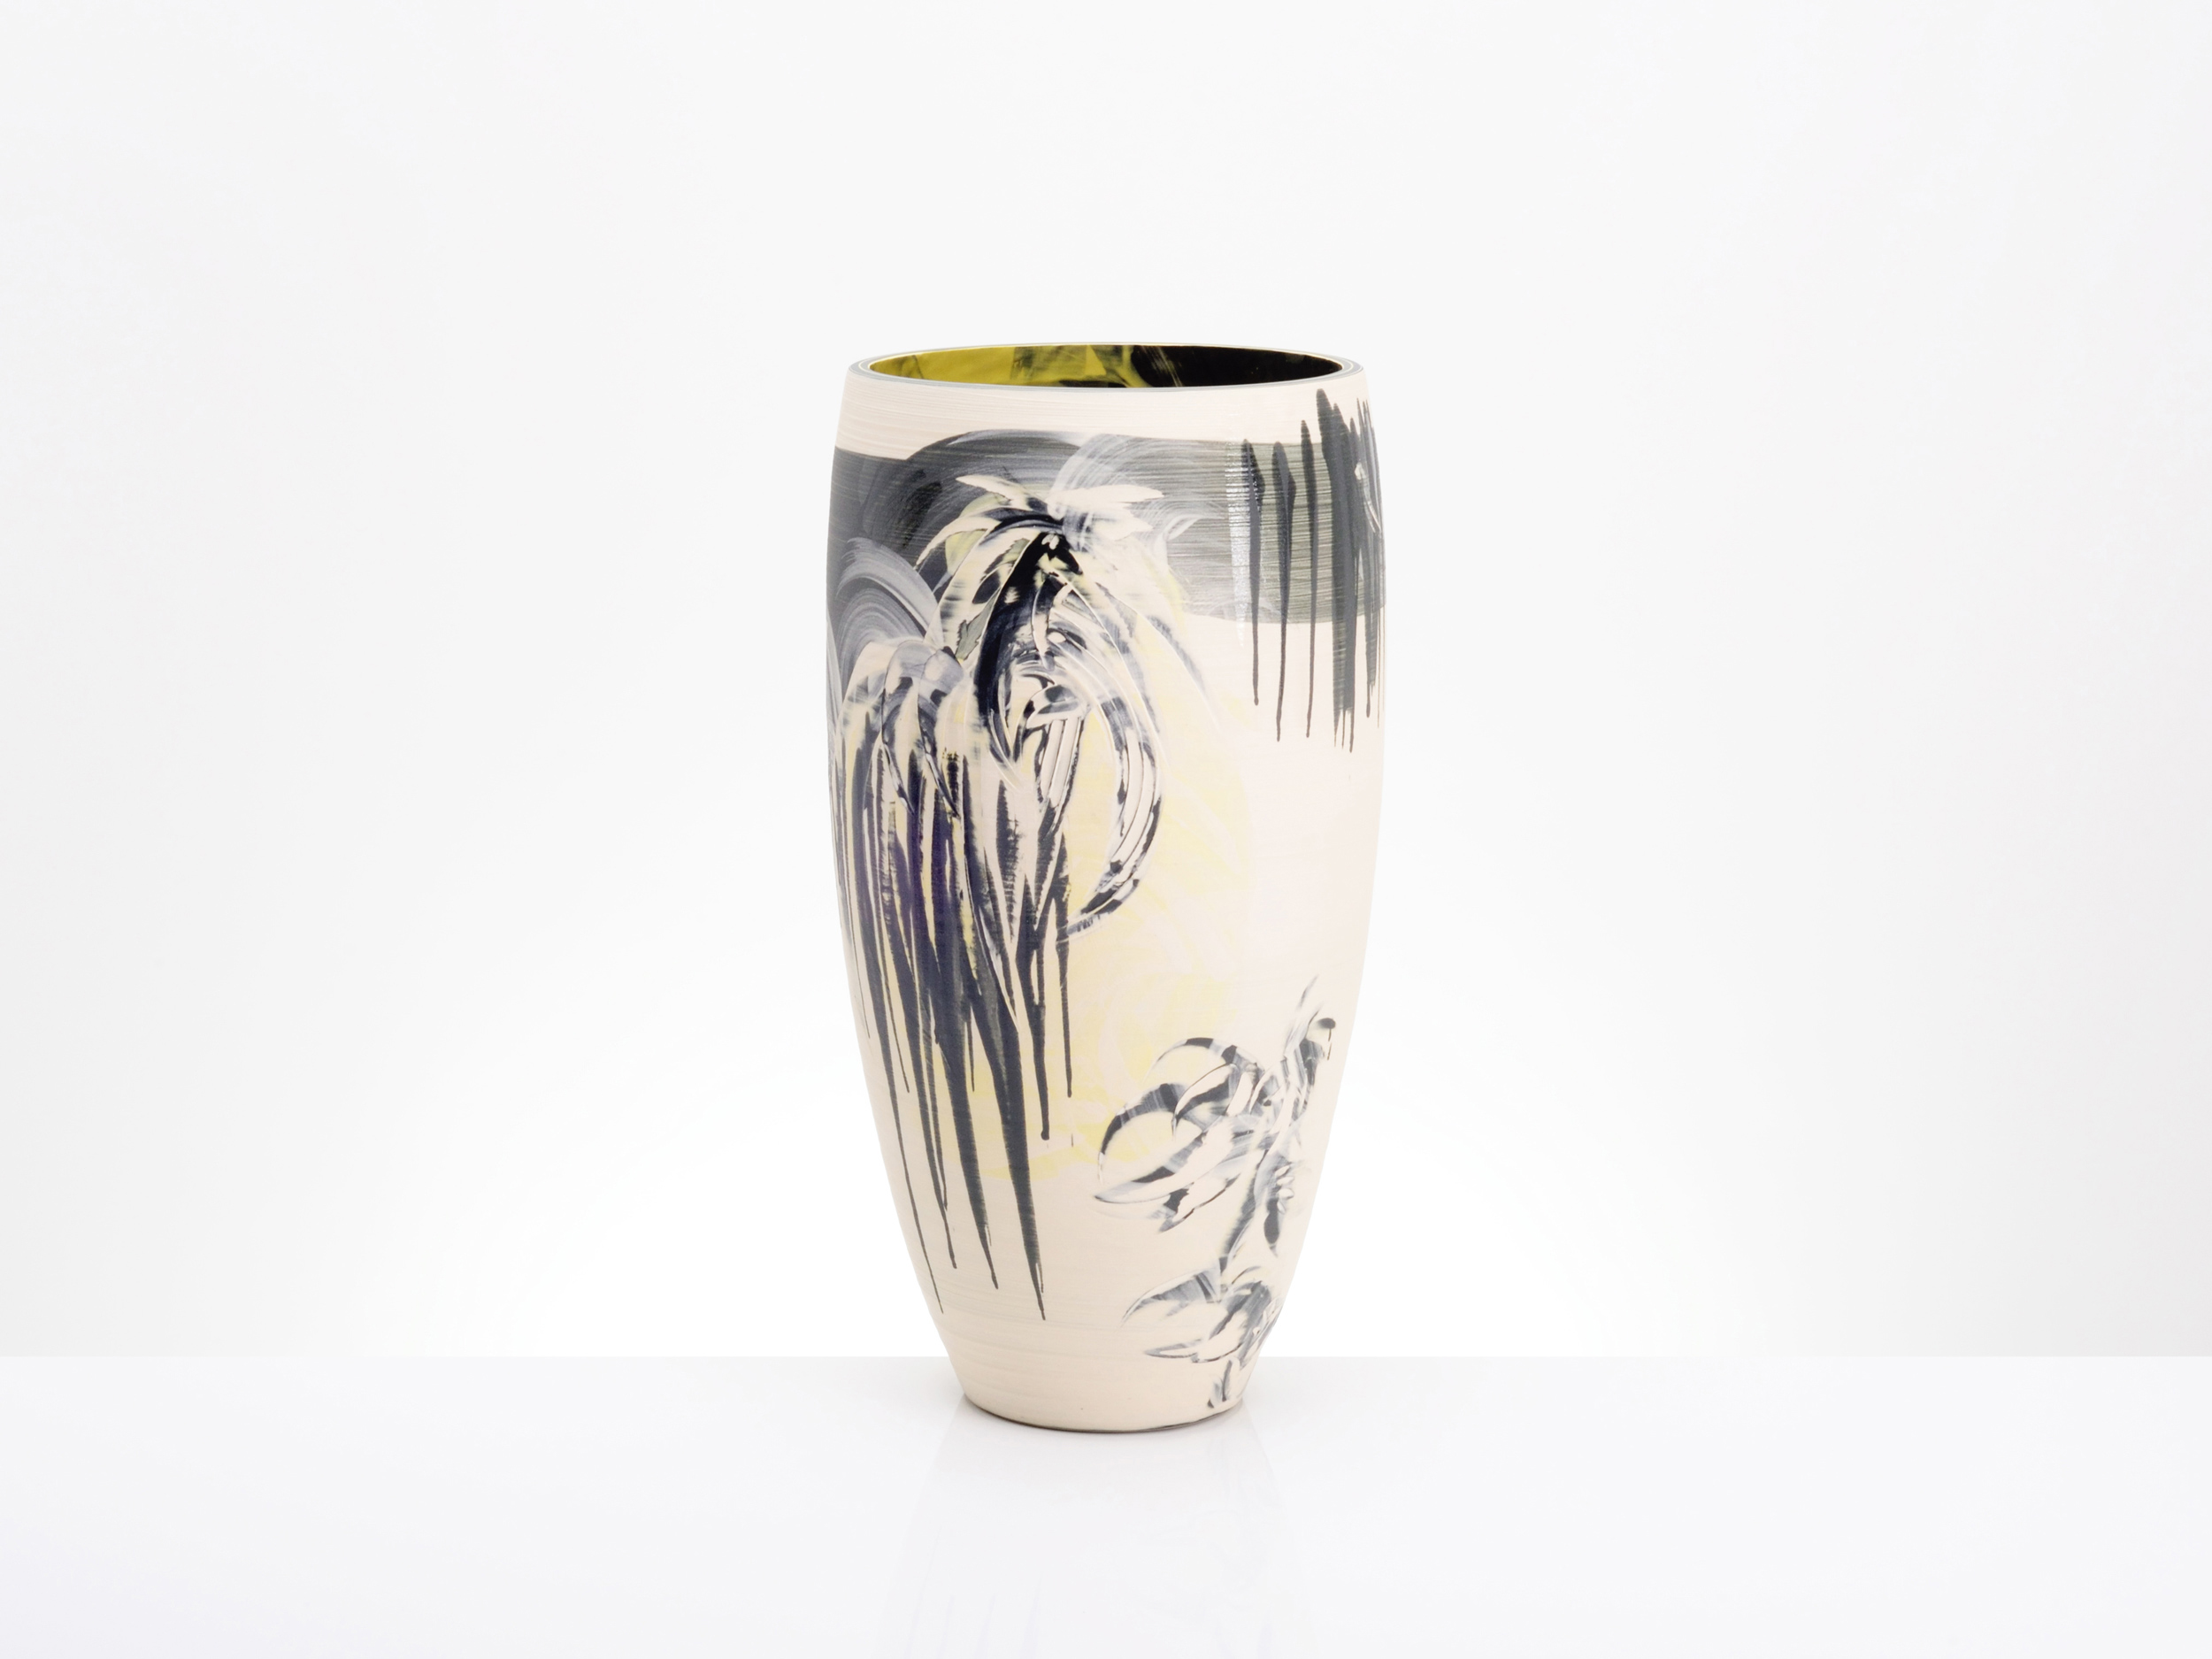 Oriental Style Star Expression Vase by Rowena Gilbert